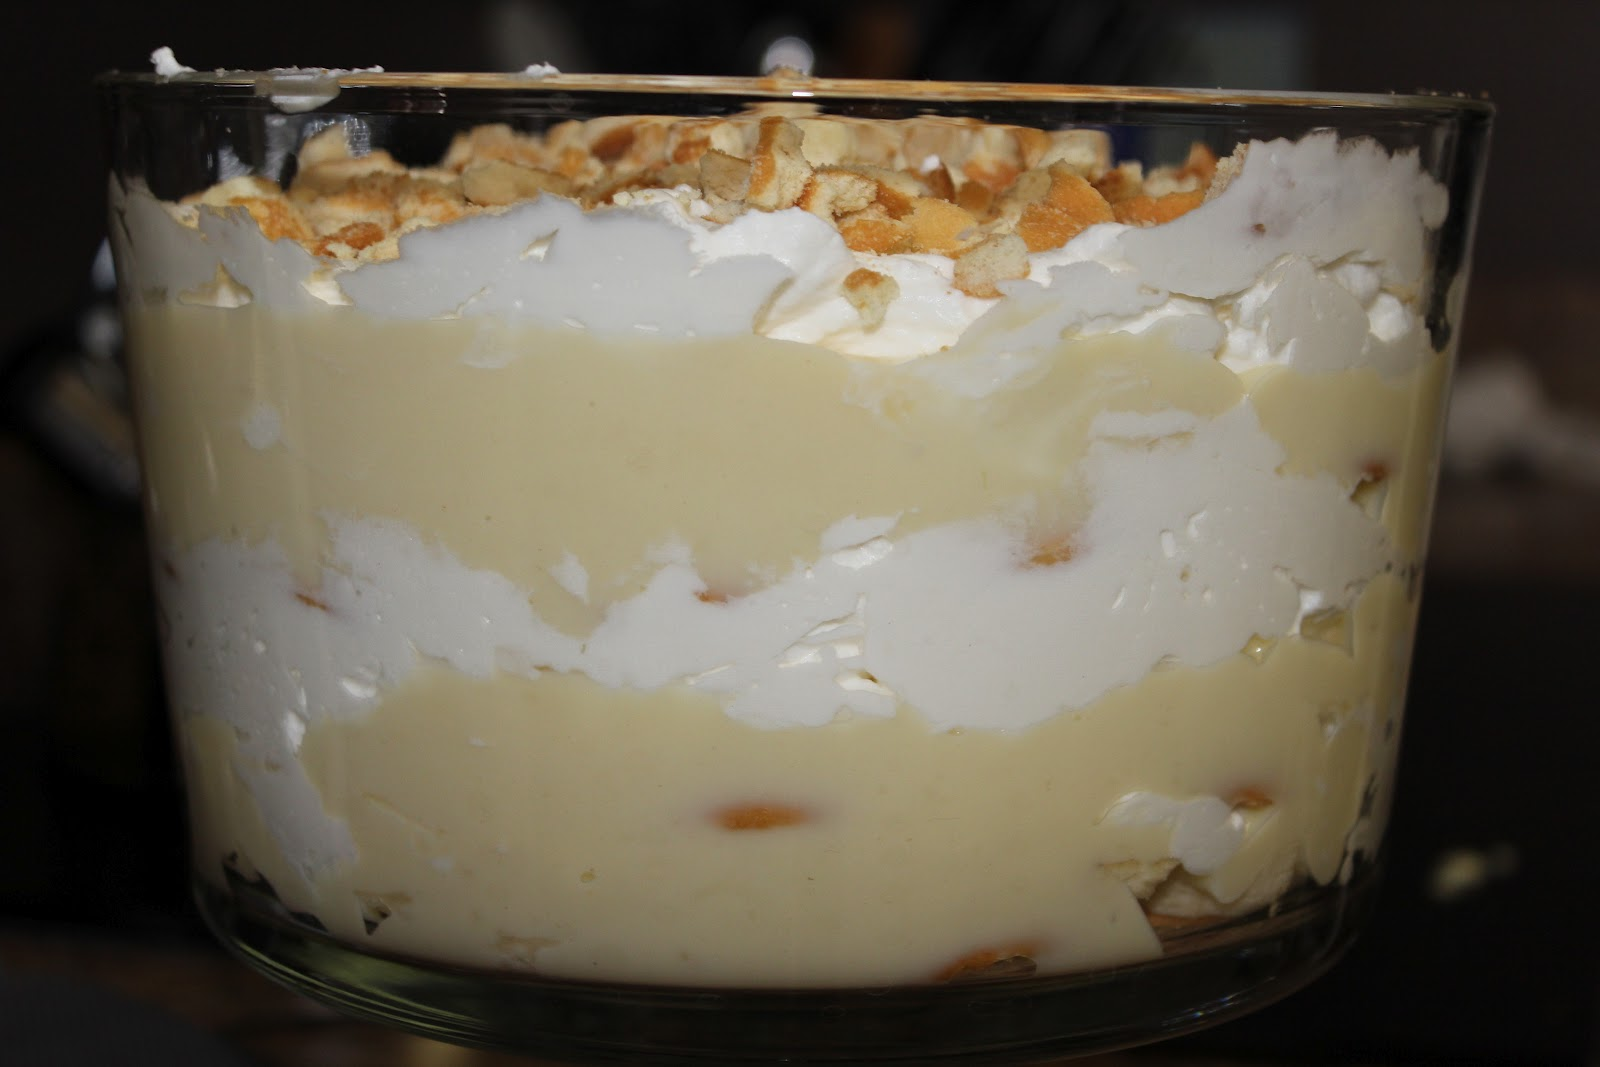 Stories of the Stidhams: Homemade Banana Pudding